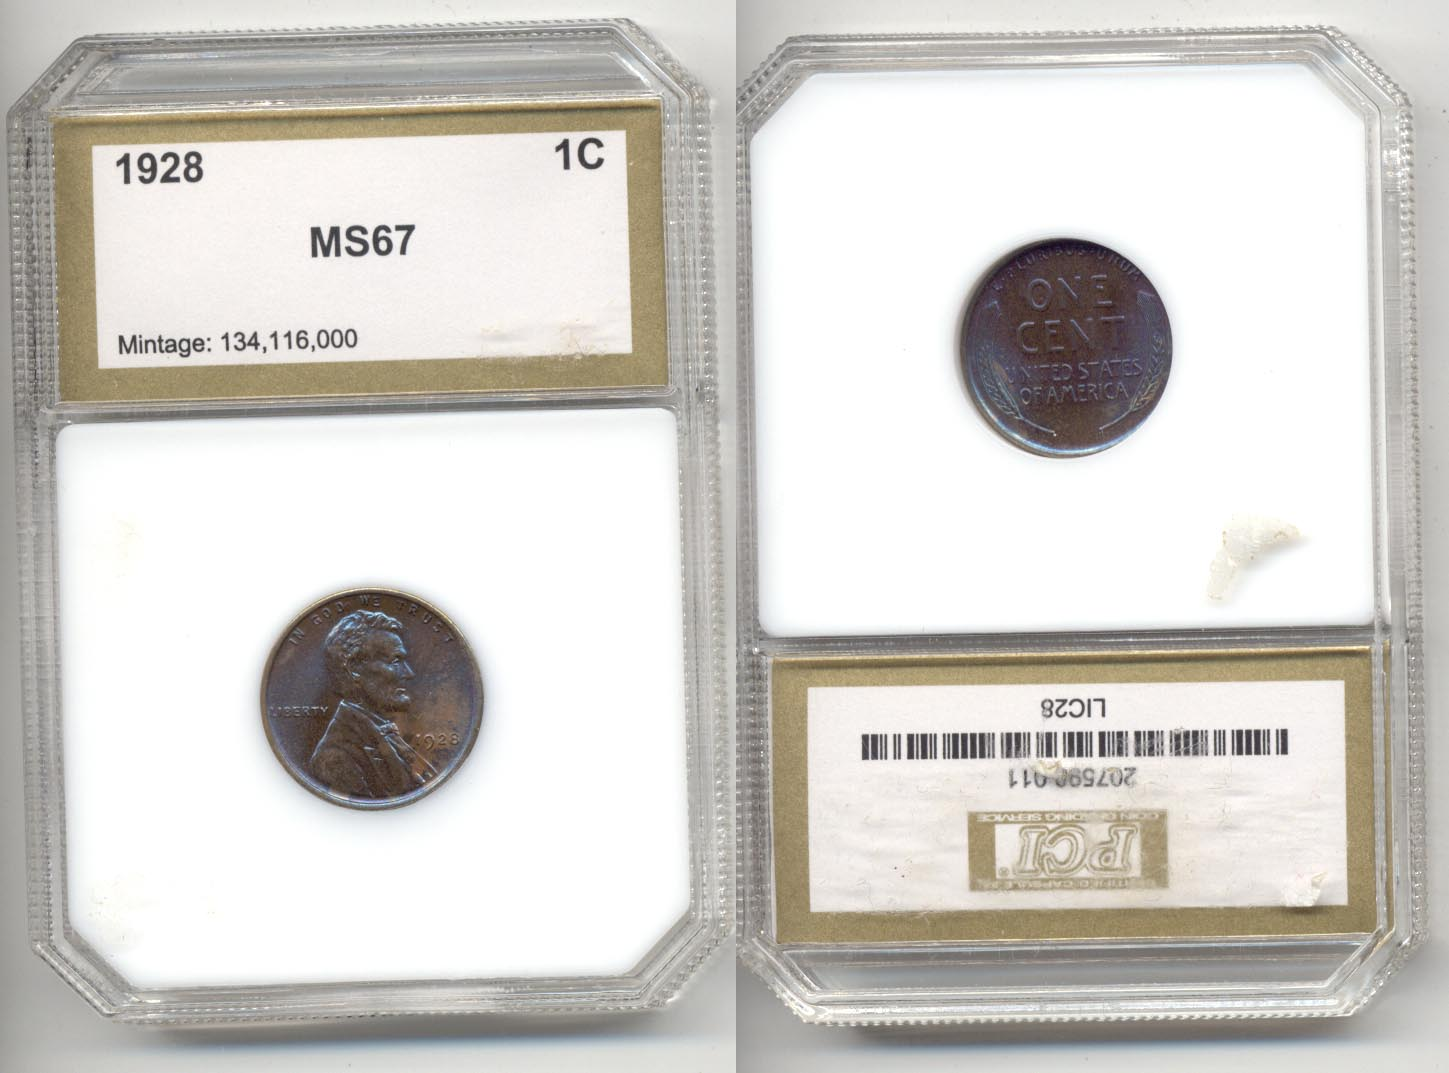 1928 Lincoln Cent PCI MS-67